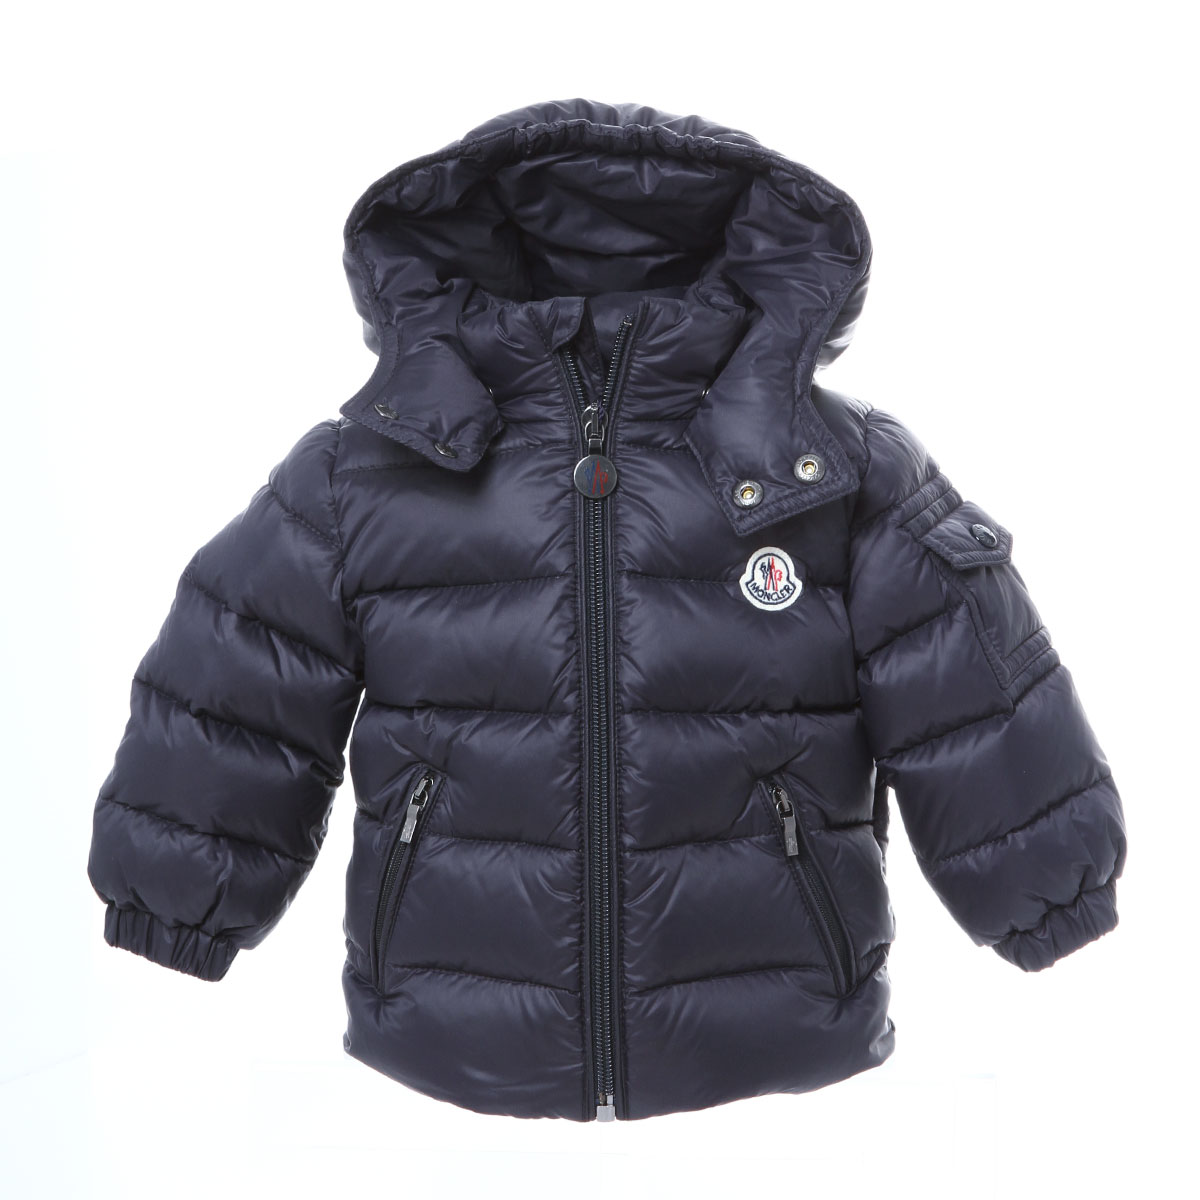 Down jacket JULES Jules NAVY dark blue 6M with Monk rail MONCLER outer baby Boys JULES 53079 742 food